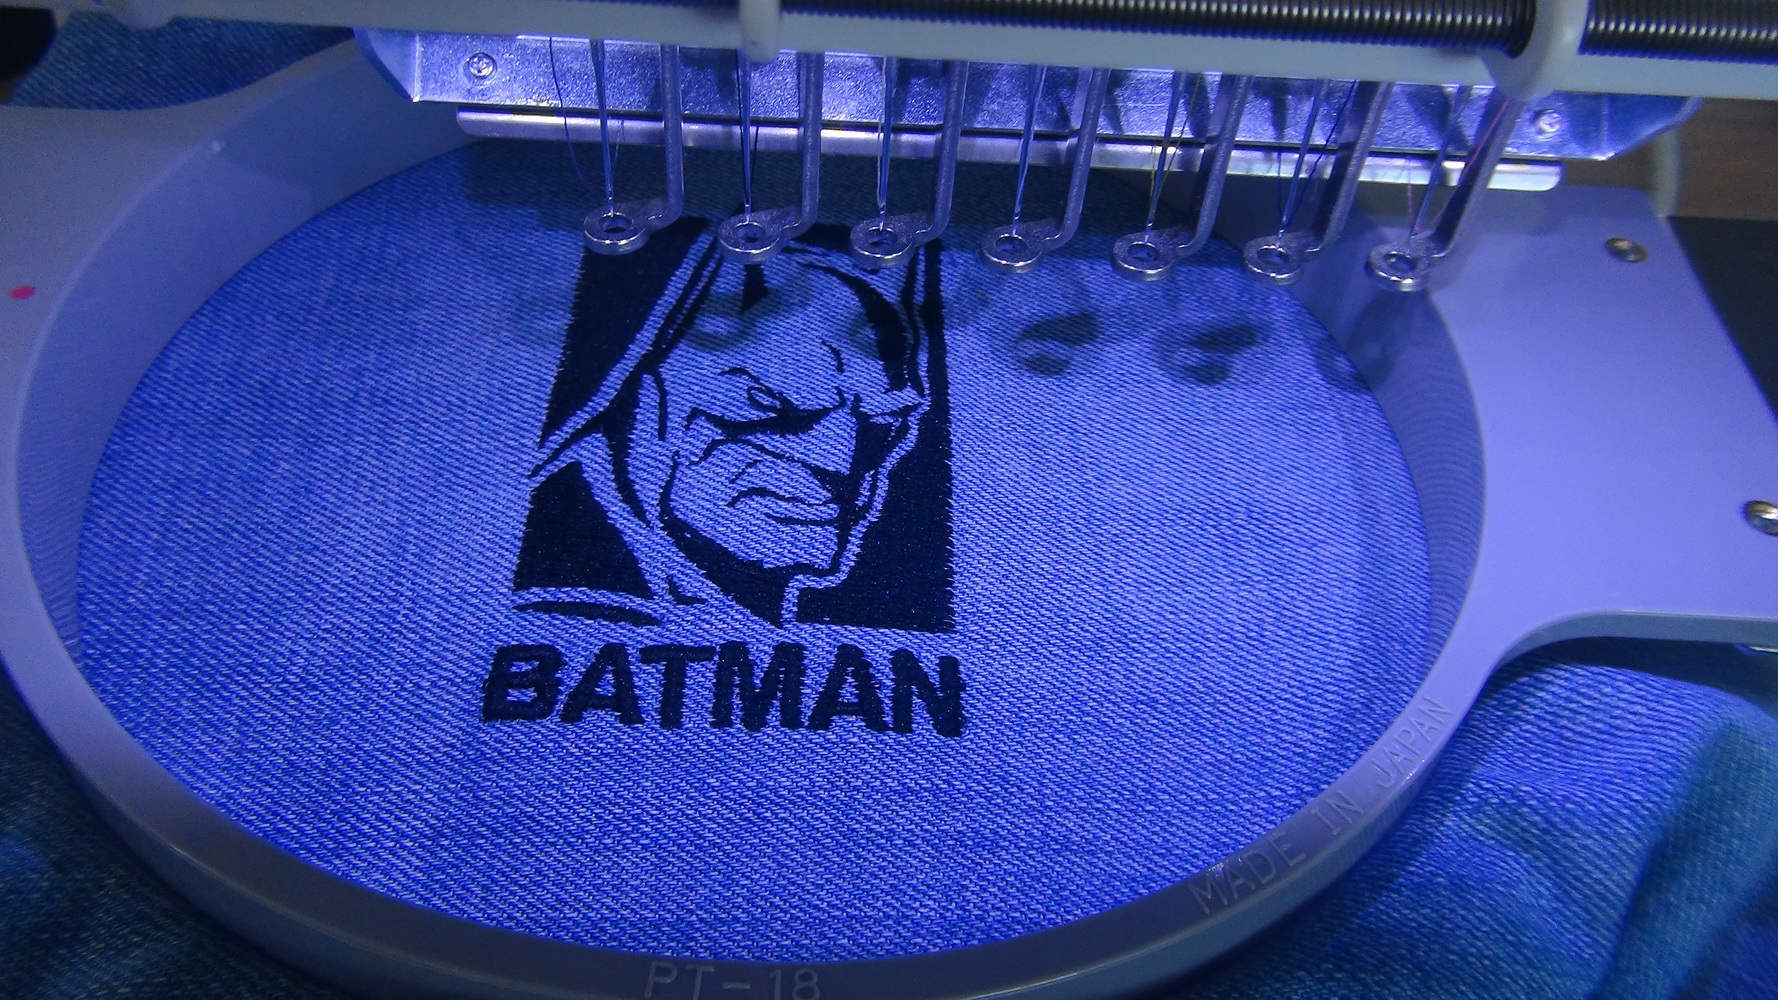 Batman Evil Fears The Knight design in embroidery hoop